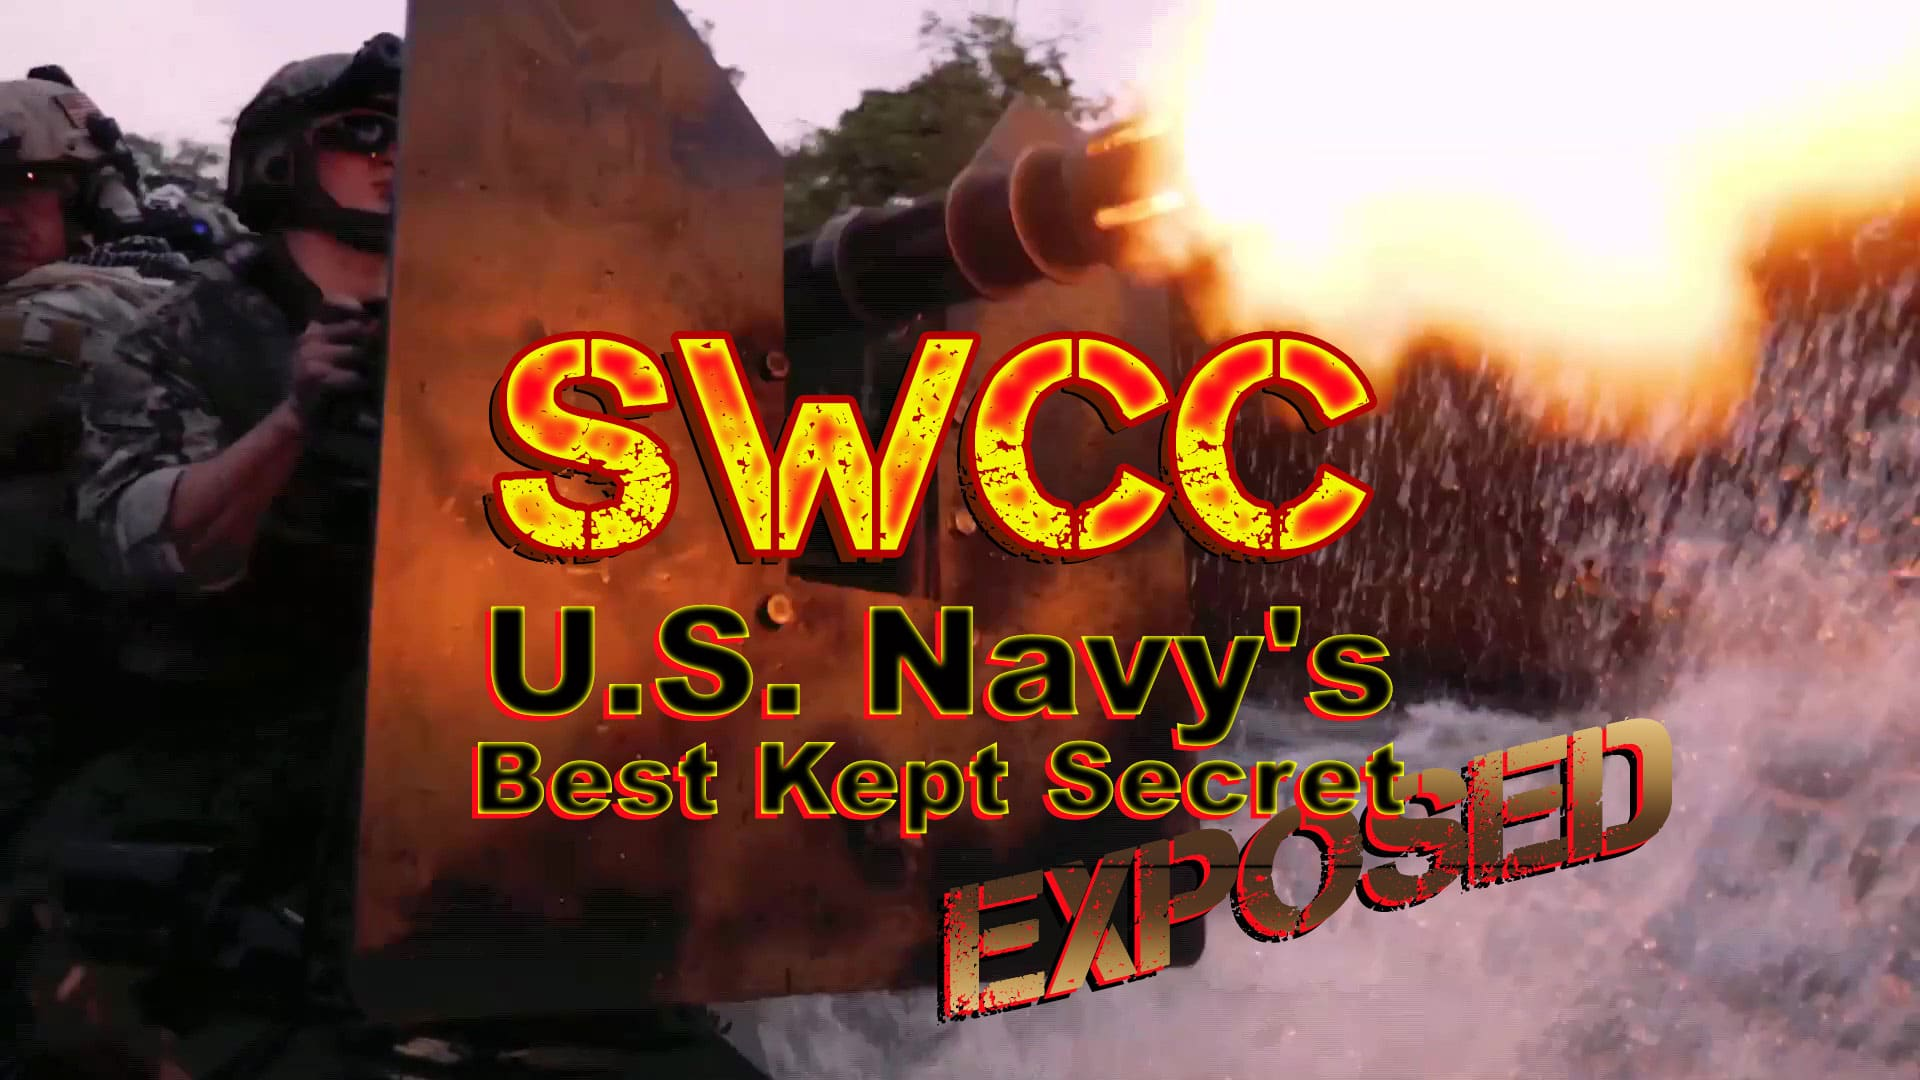 SWCC US Navy - The Navy's Best-Kept Secret!